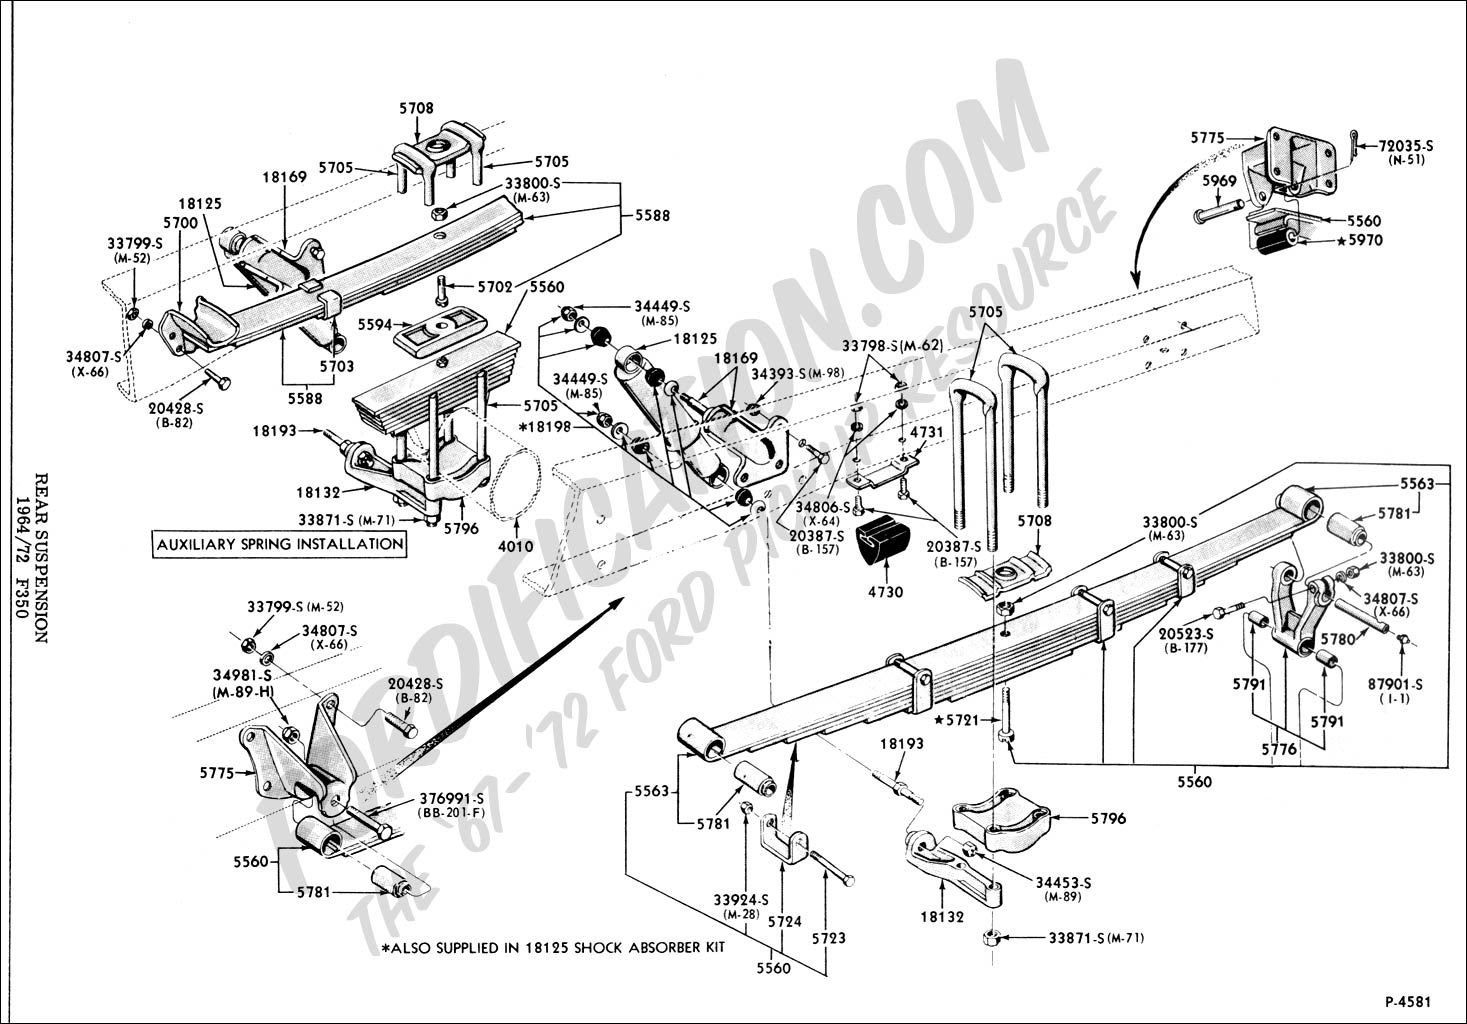 hight resolution of 2001 f350 steering diagram wiring diagrams scematic 2001 ford f350 dually 2001 f350 frame diagram